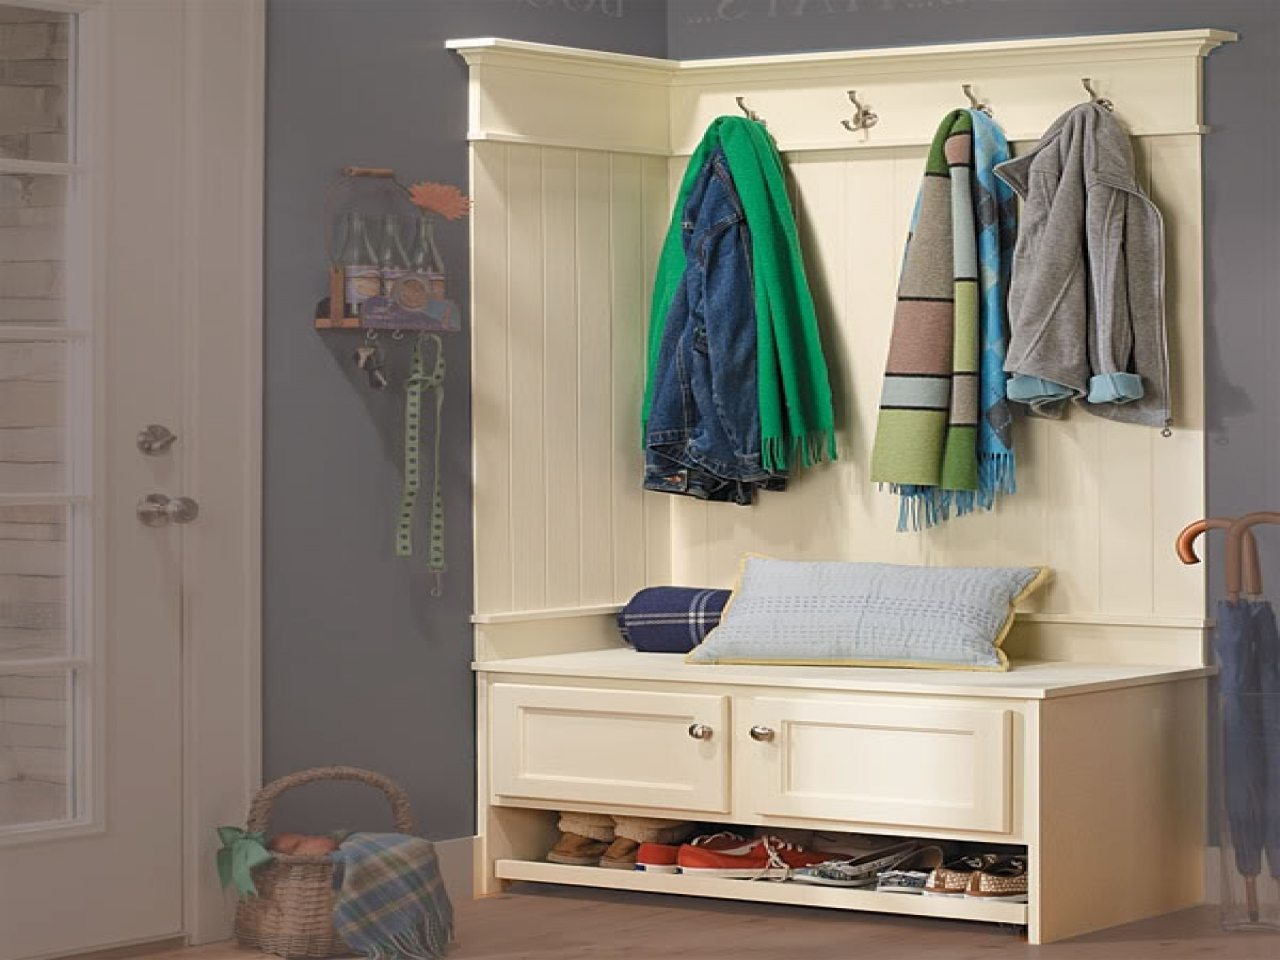 hallway-coat-cupboard-walk-in-closet-organization-ideas-entryway